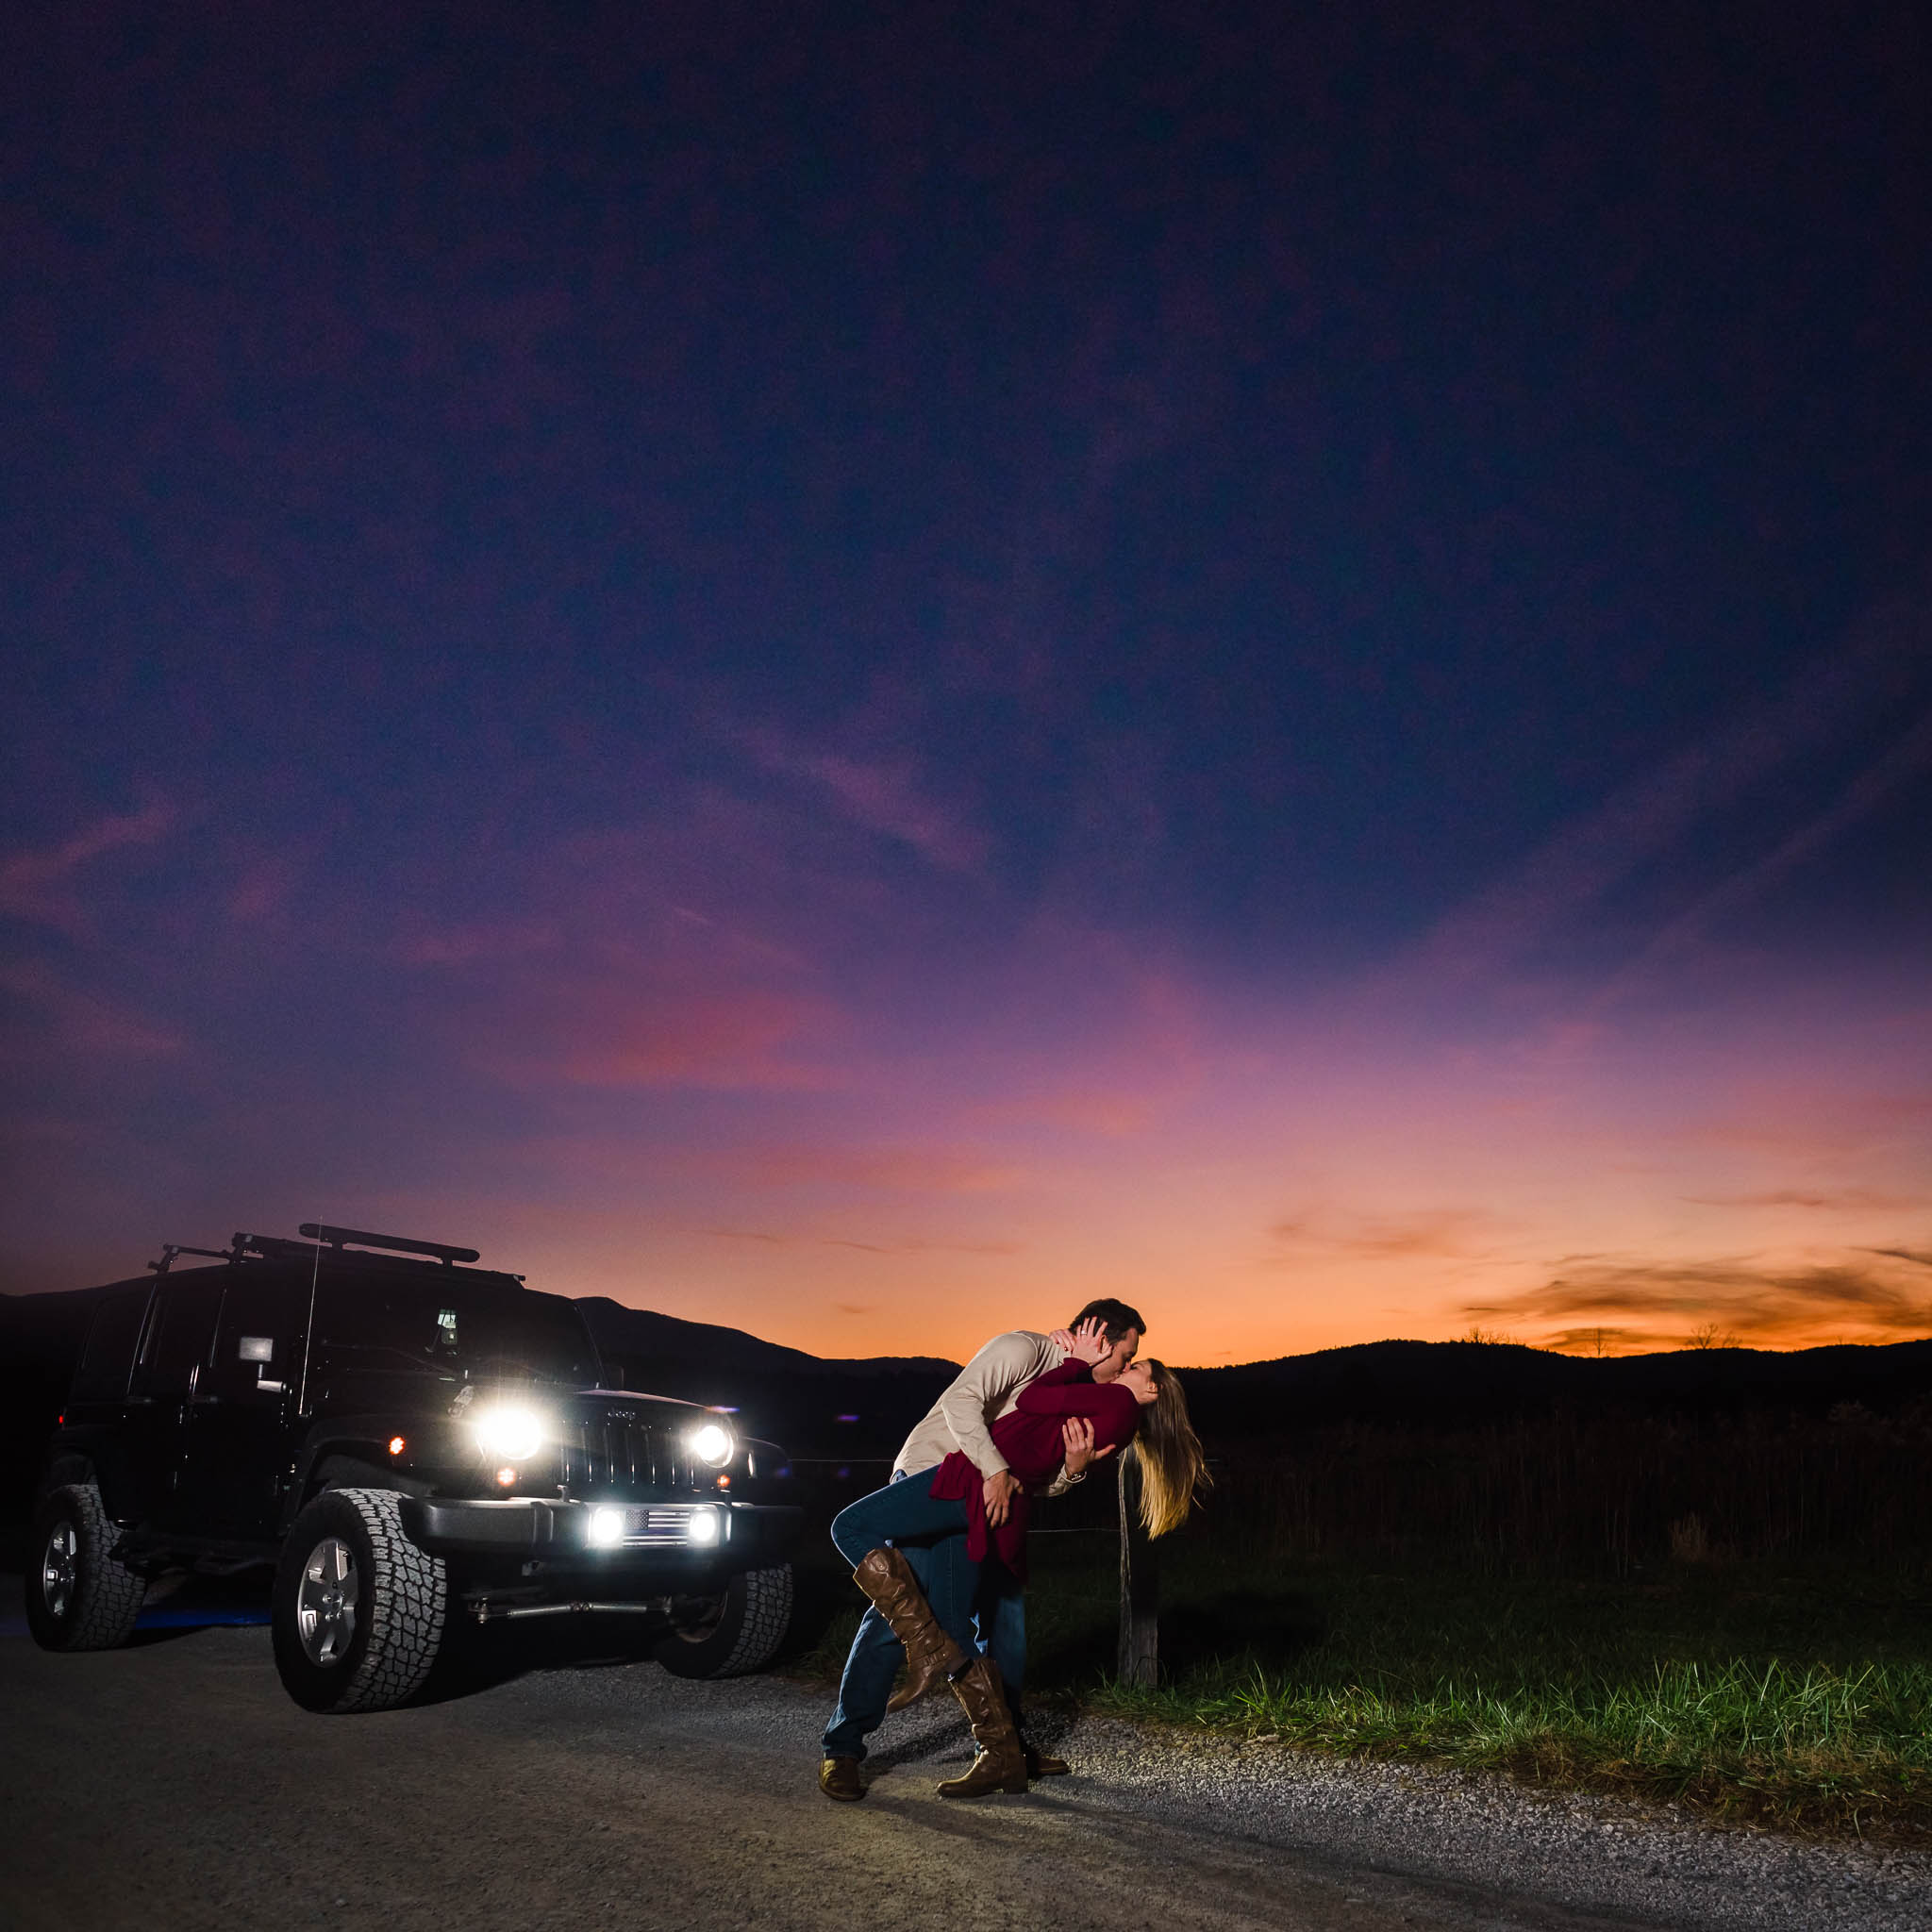 jeep with headlights on in front of a killer sunset with couple kissing